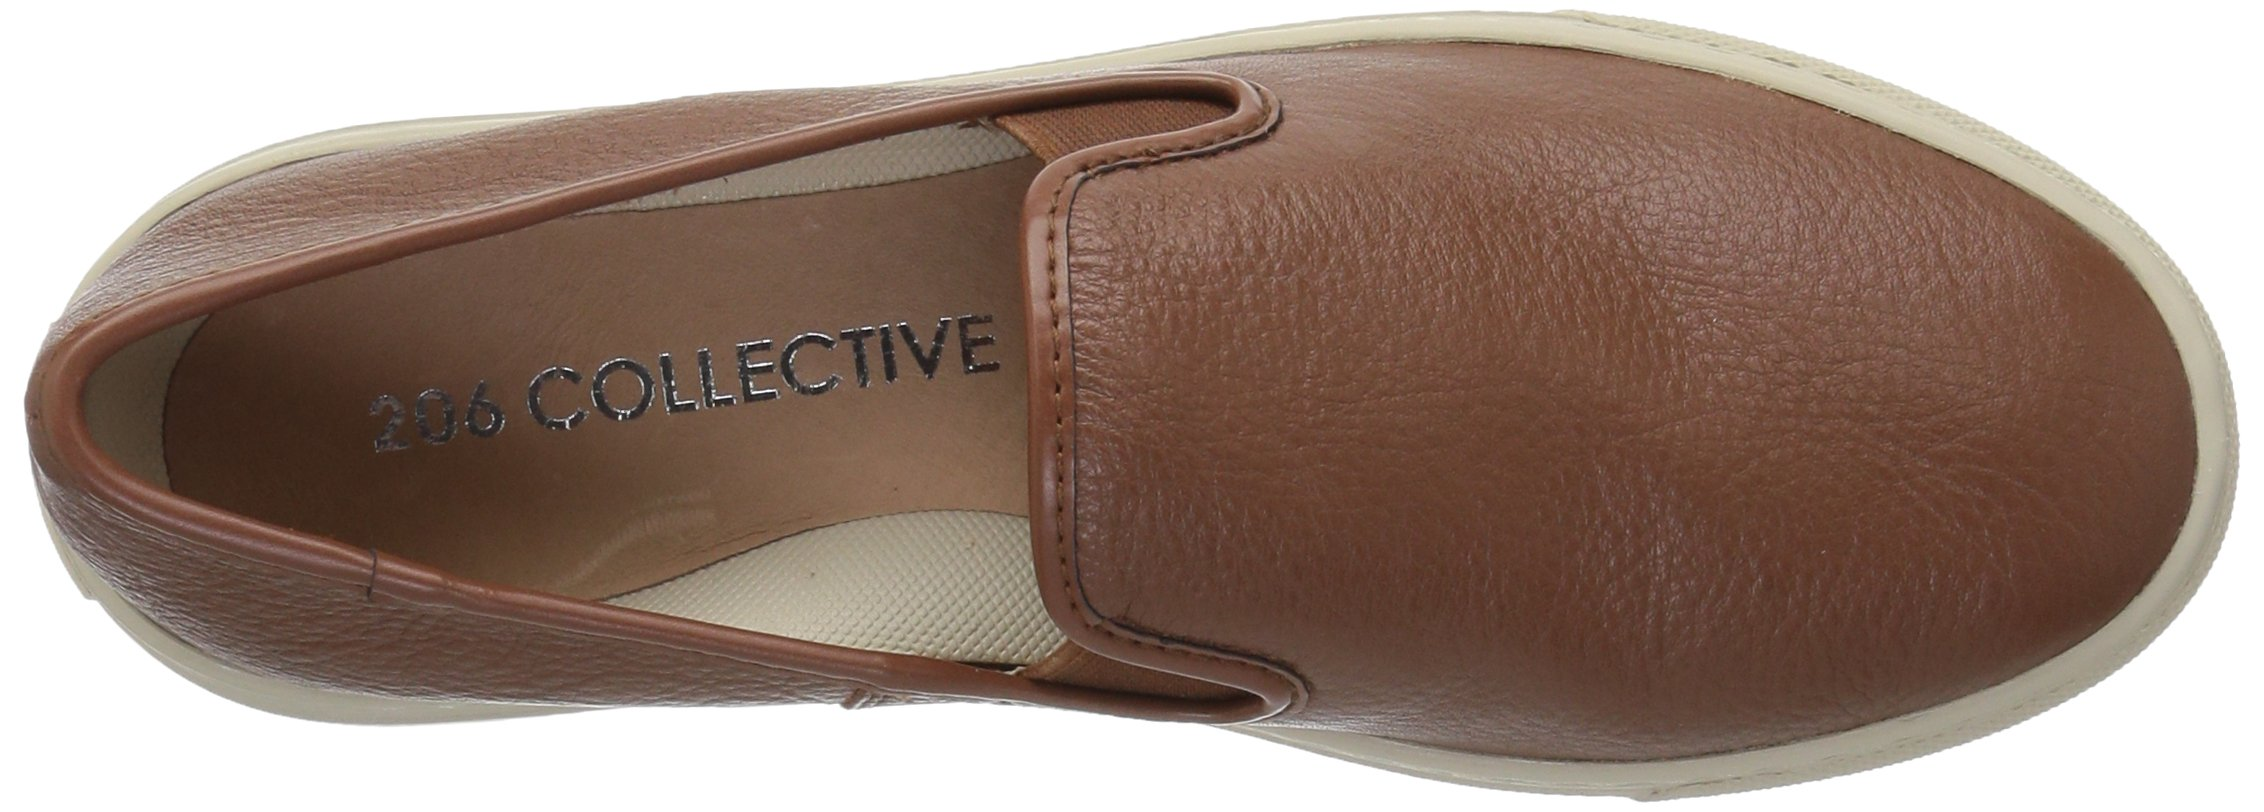 206 Collective Women's Cooper Perforated Slip-on Fashion Sneaker, Cognac Leather, 8.5 B US by 206 Collective (Image #7)